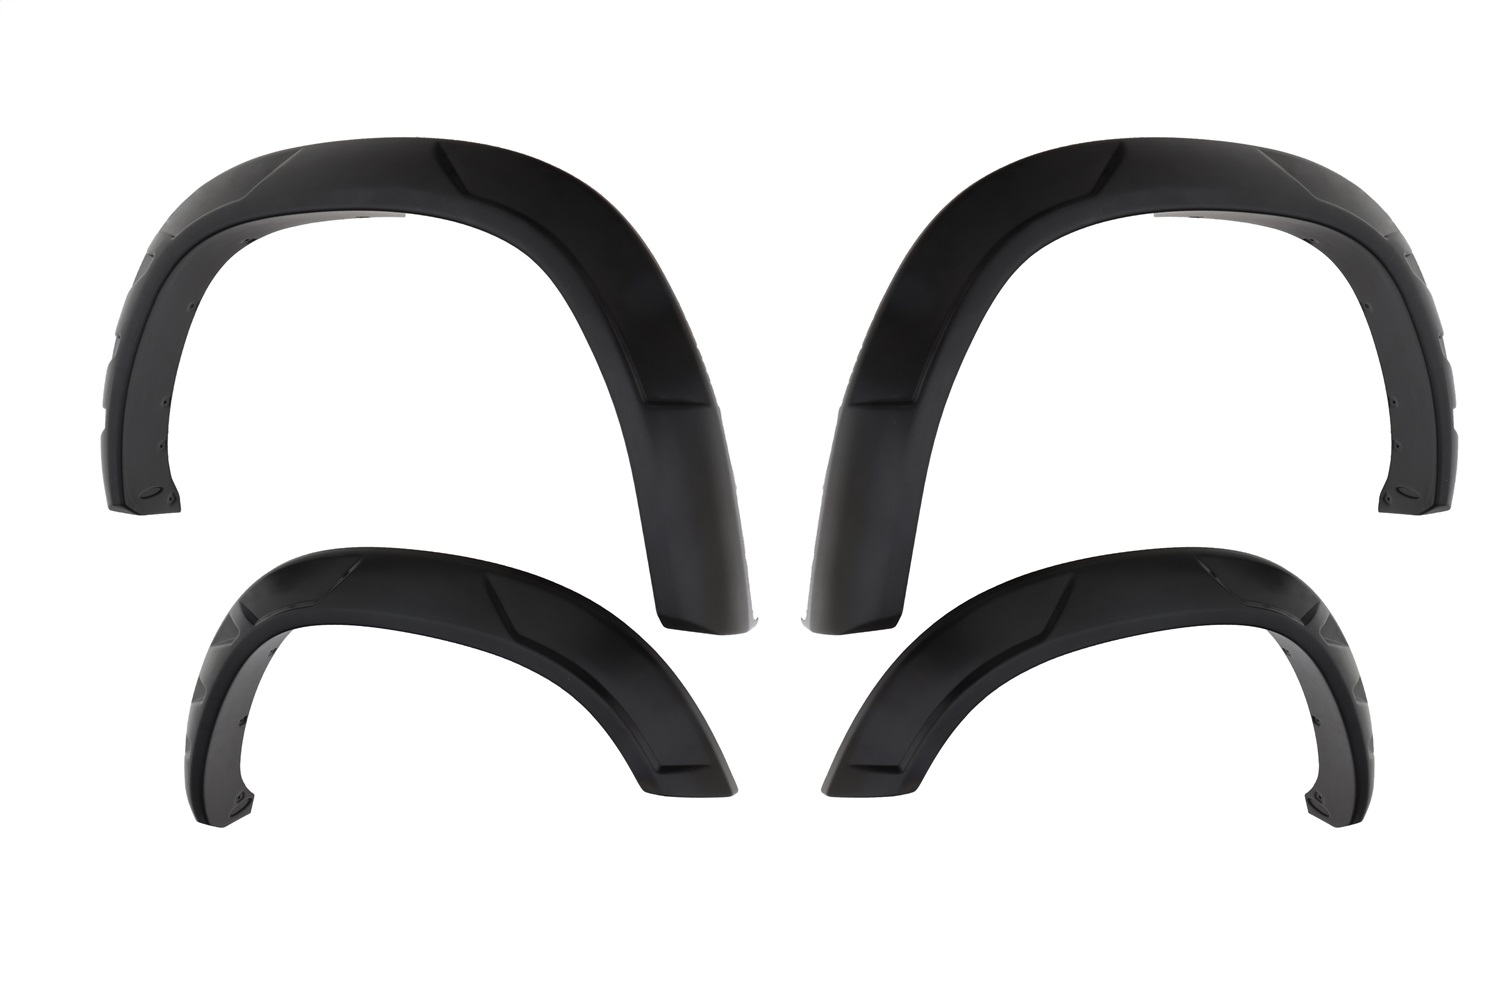 DRT StyleT Fender Flares, 4 pc., Front Tire Coverage 3 in., Front Height 4.5 in., Rear Tire Coverage 3 in, Rear Height 4.5 in., Smooth Finish, Black